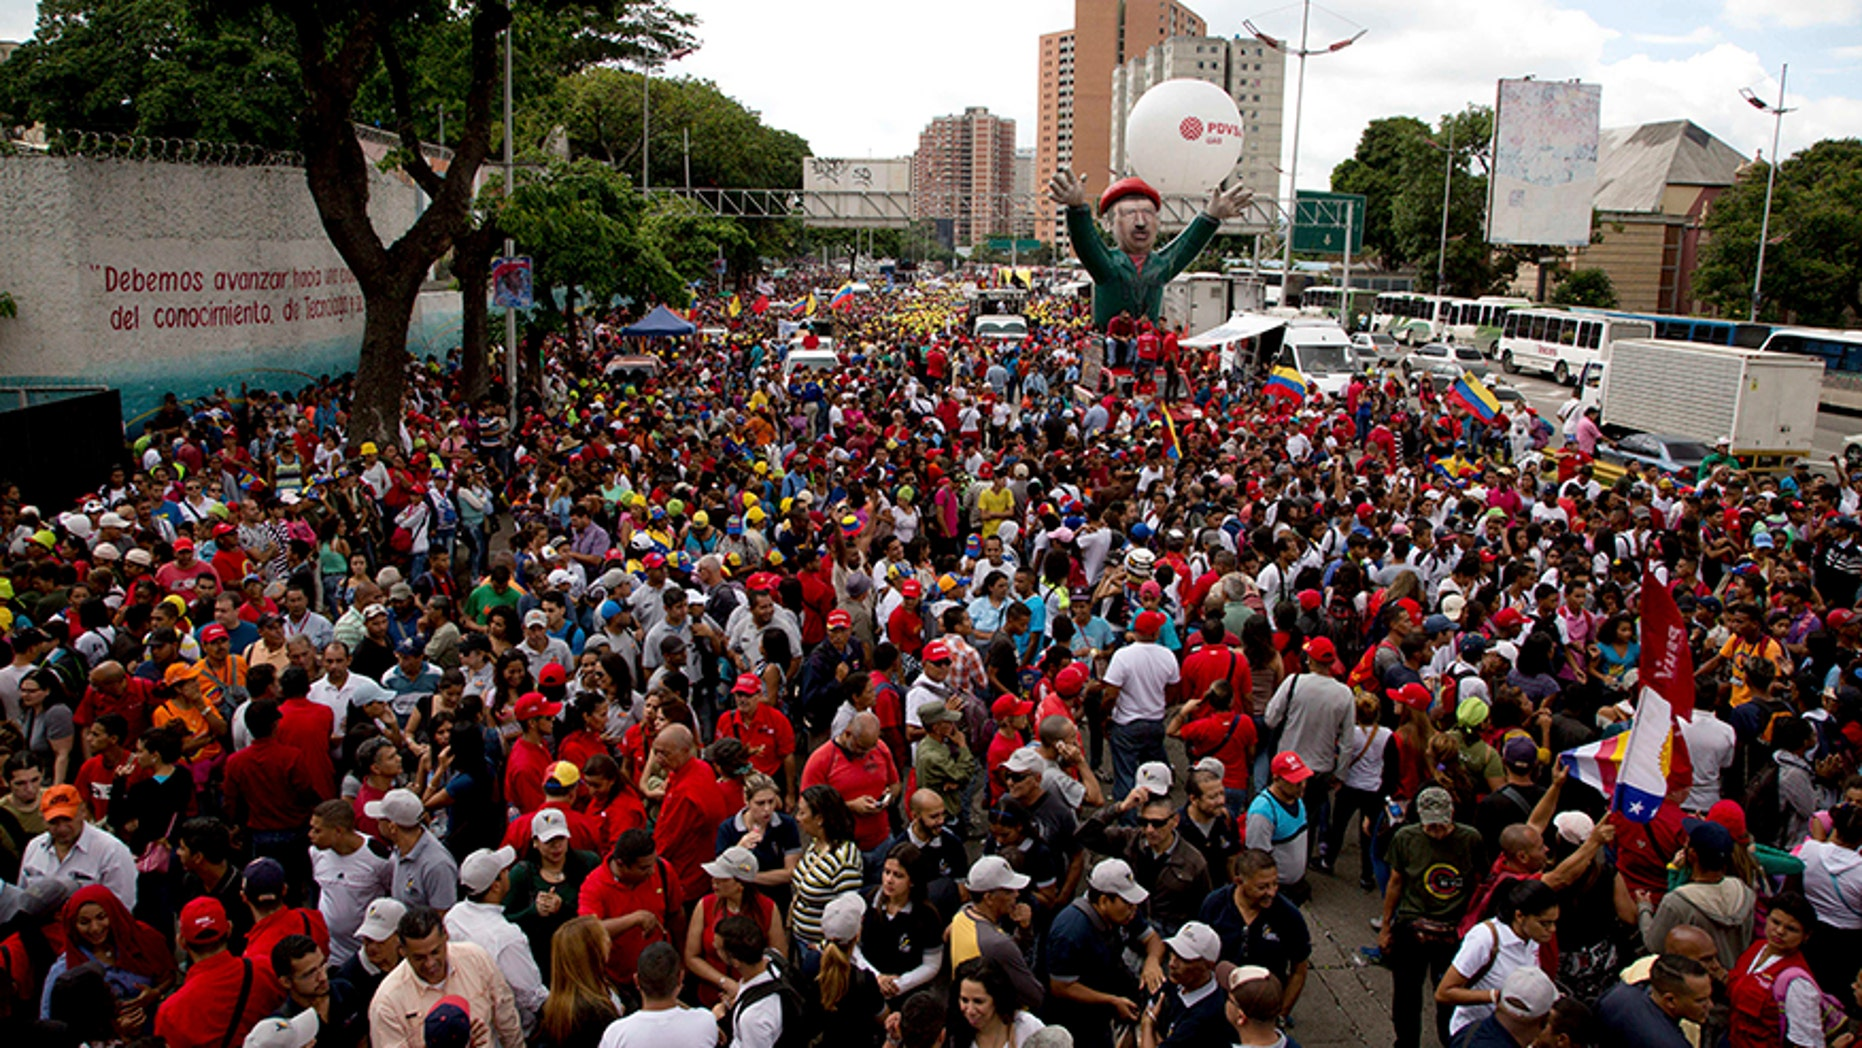 Supporters of Venezuela's President Nicolas Maduro prepare for a march.